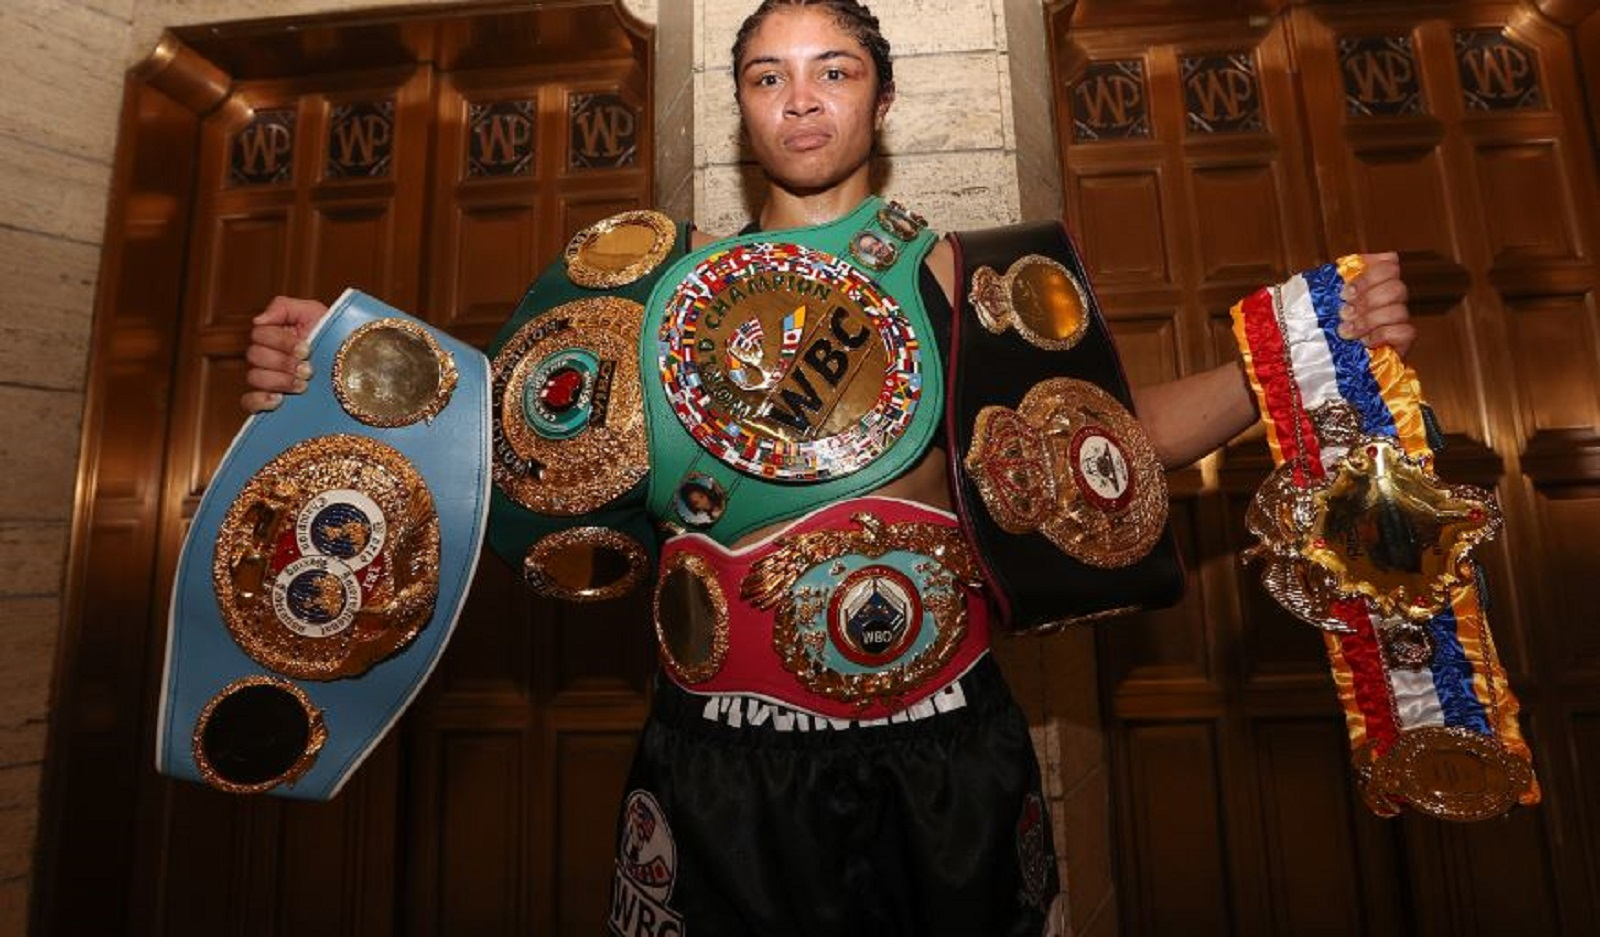 7 Facts That Make Jessica McCaskill A Champion In And Out Of The Ring